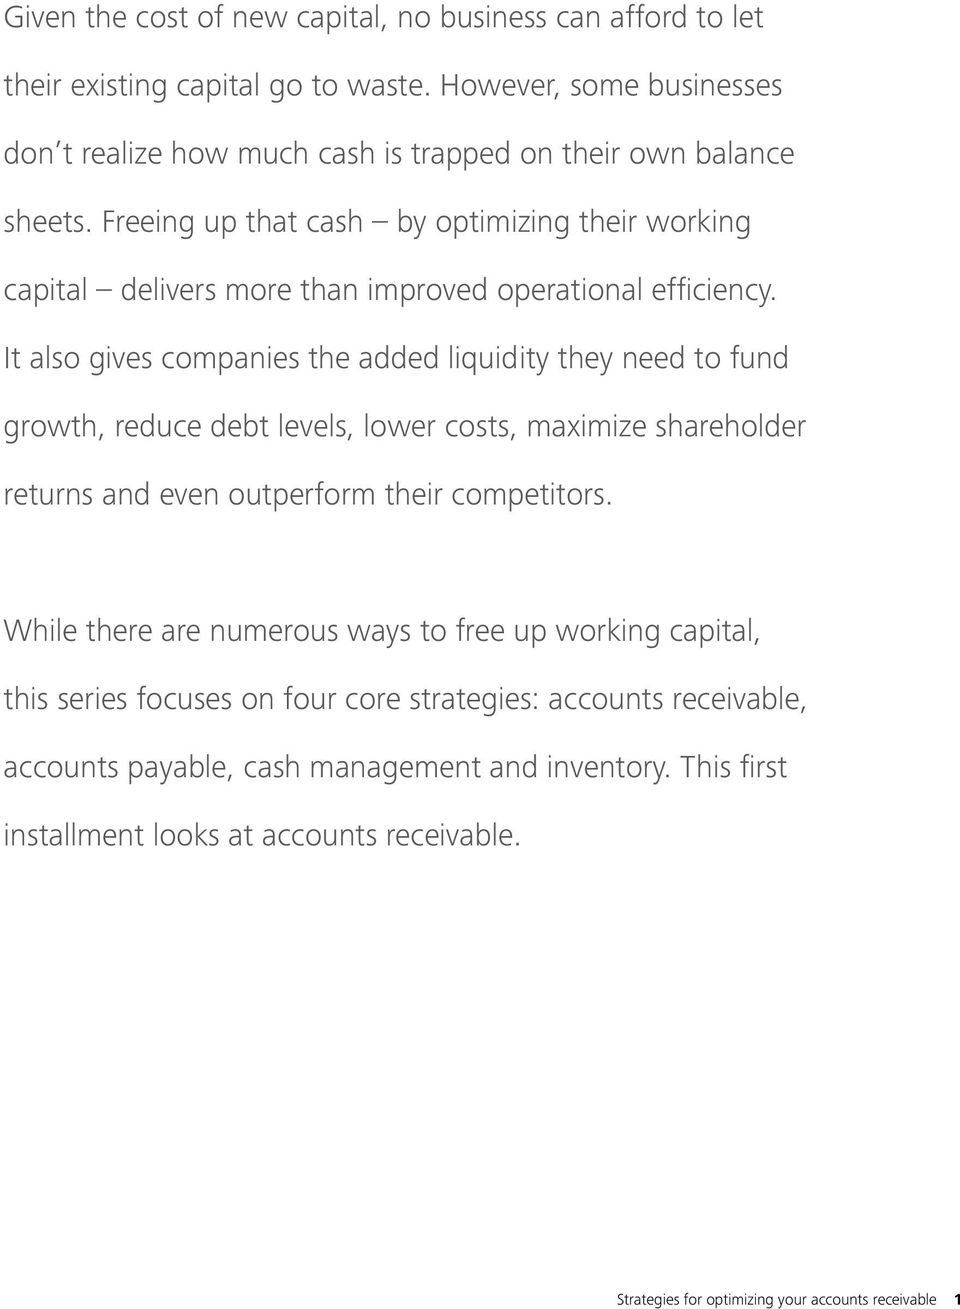 Freeing up that cash by optimizing their working capital delivers more than improved operational efficiency.